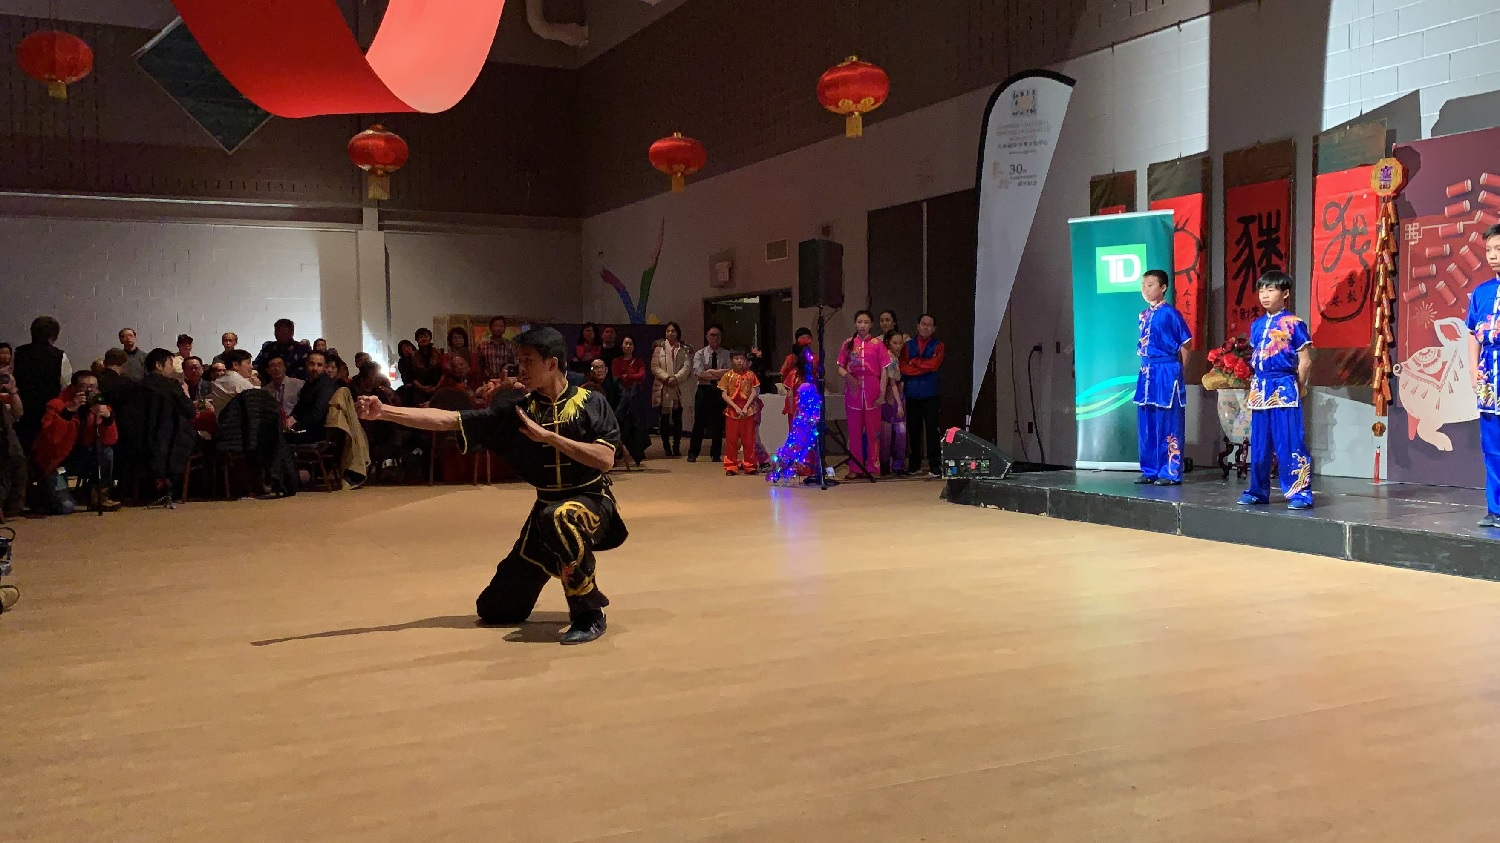 wayland-li-wushu-year-of-the-pig-dinner-chinese-cultural-centre-2019-13.jpg